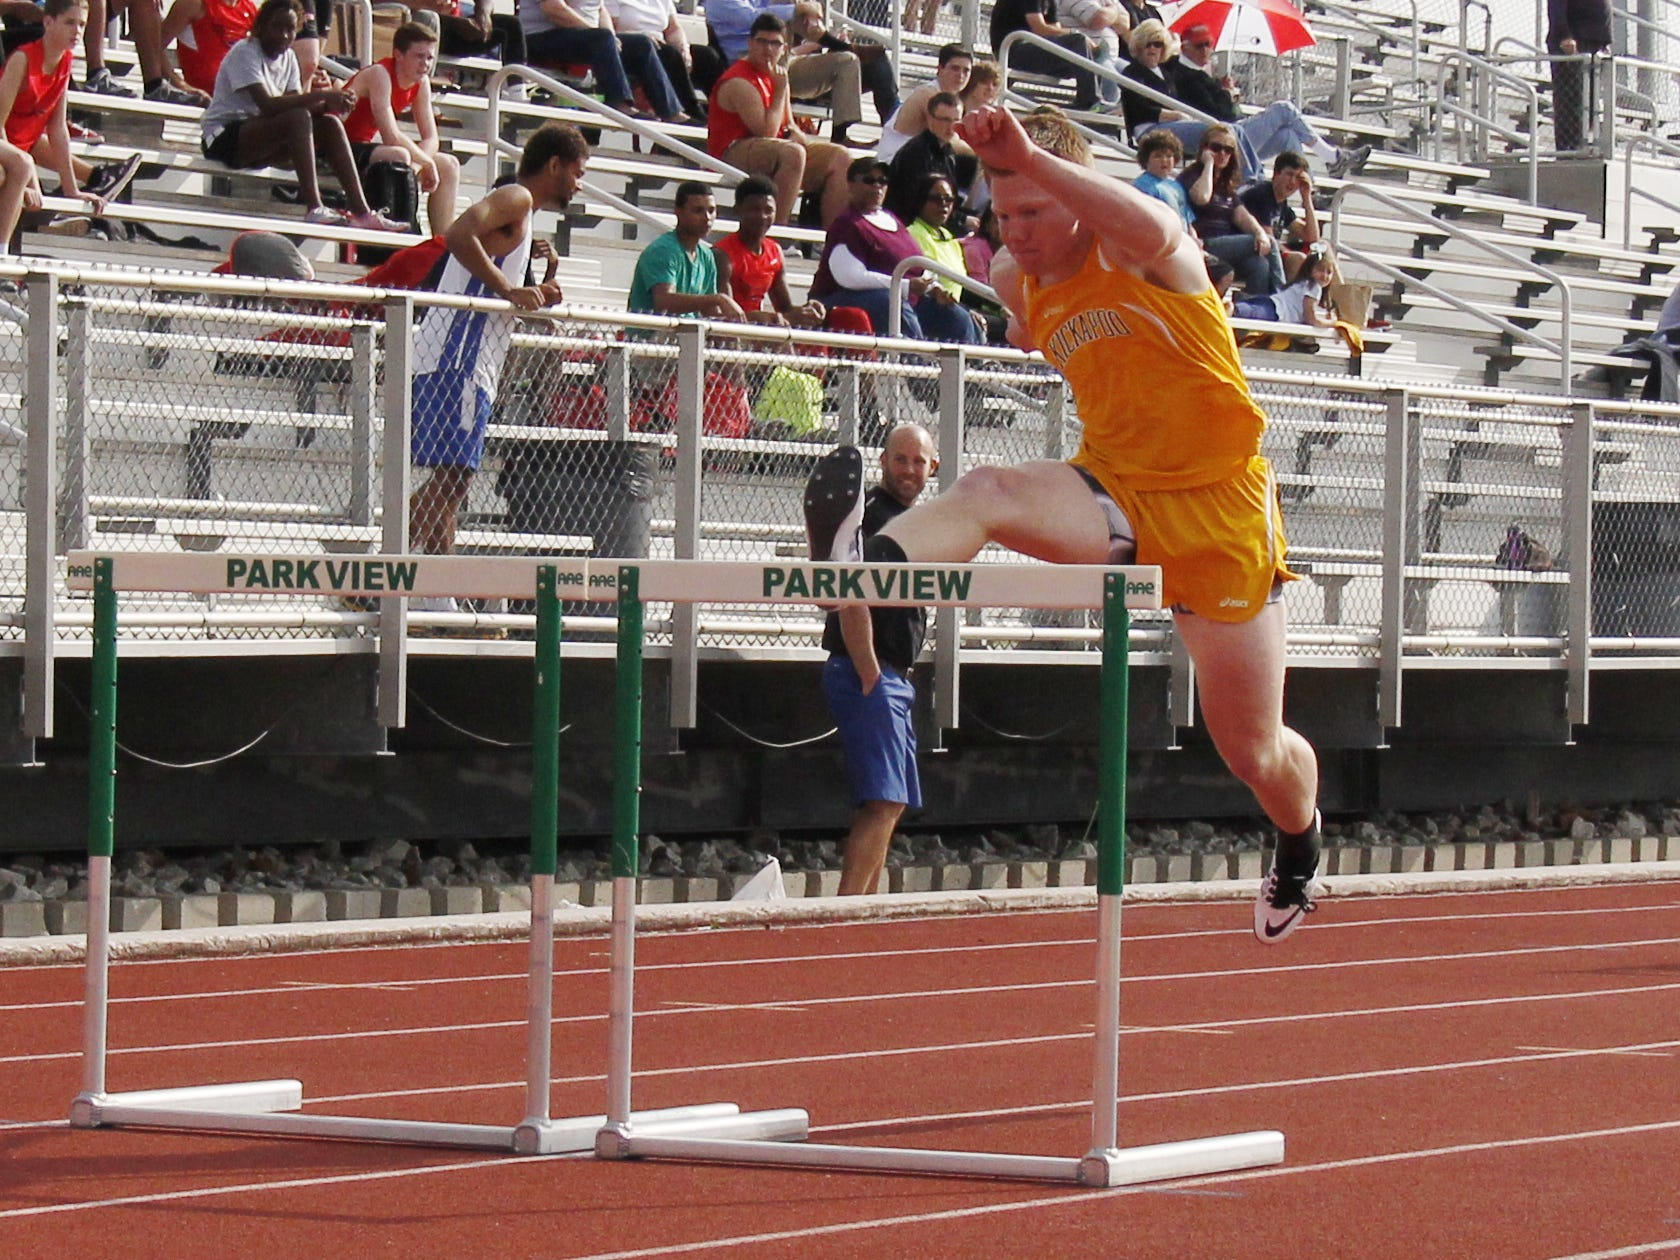 Kickapoo sophomore Maverick McGee won the 110-meter hurdles race Thursday night at JFK Stadium with an unofficial time of 15.6 seconds.